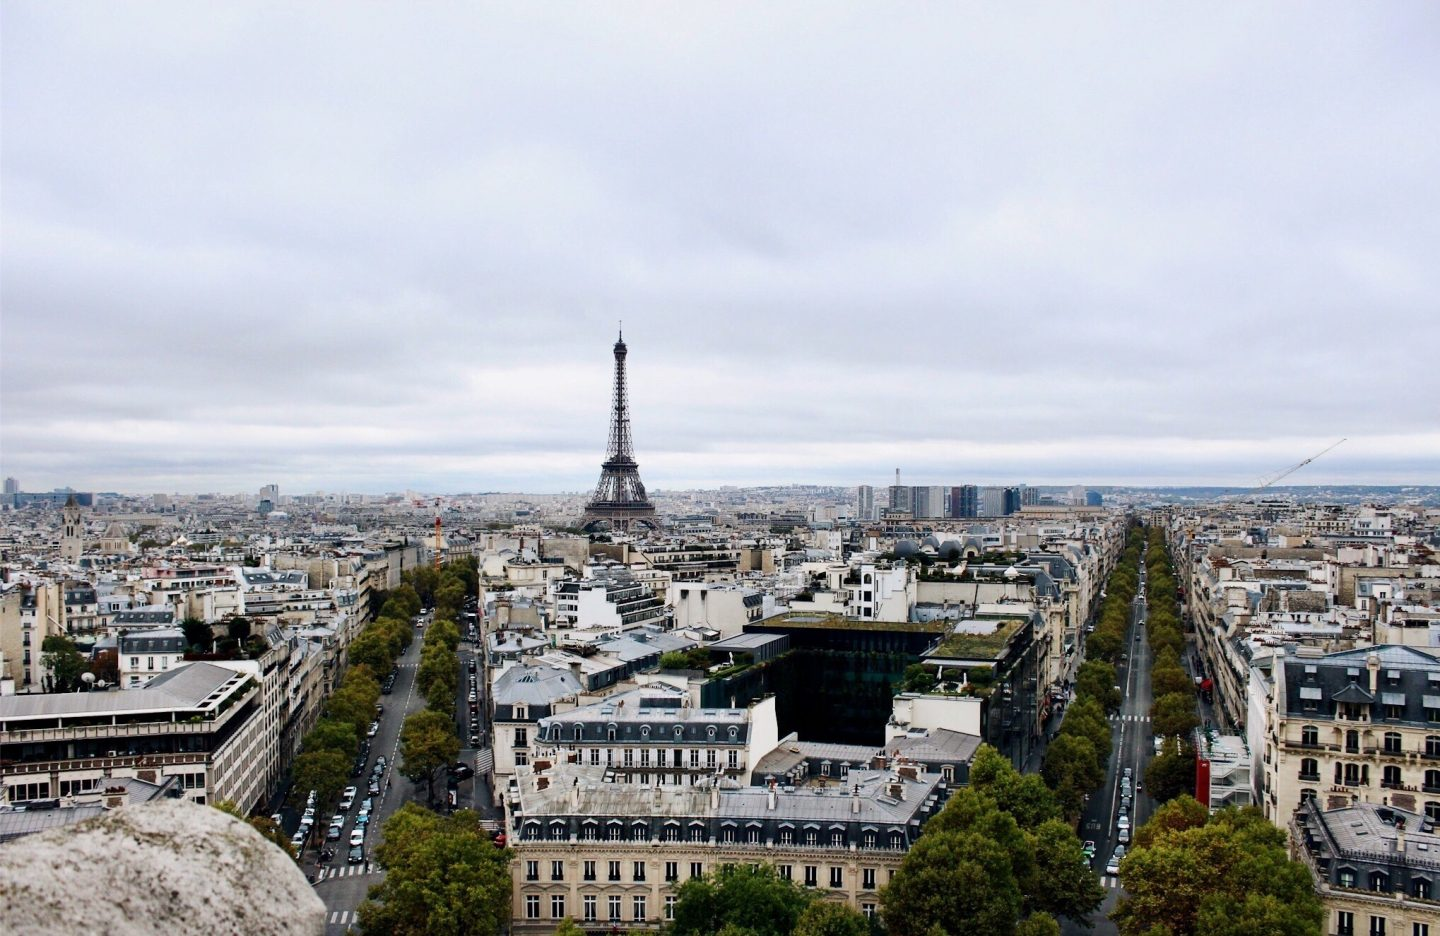 View of the Eiffel Tower from the top of the Arc de Triomphe!